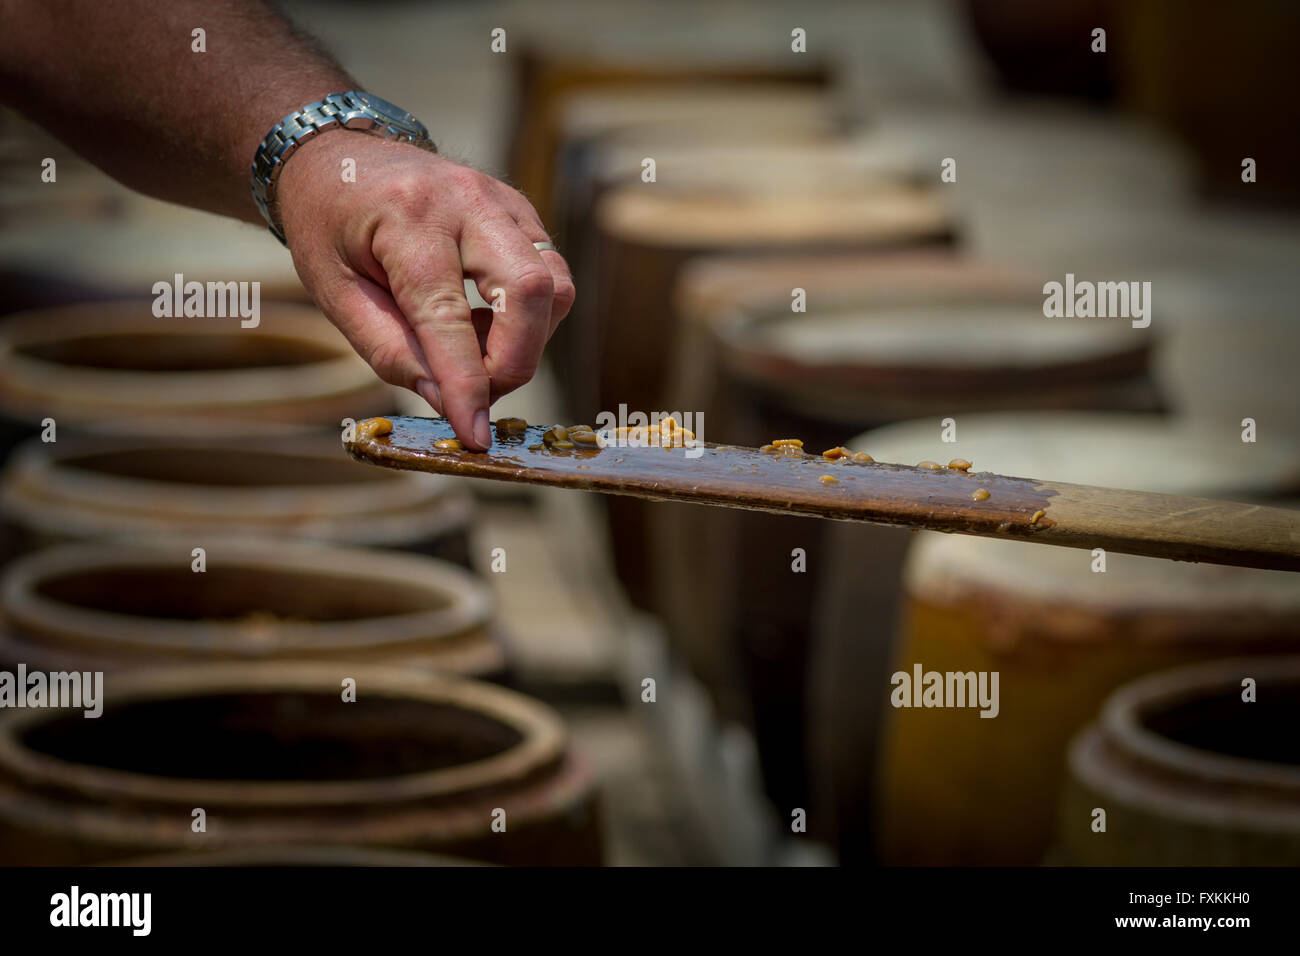 Westerner trying soy beans in the process of fermentation into soy sauce; Mekong Delta, Vietnam - Stock Image